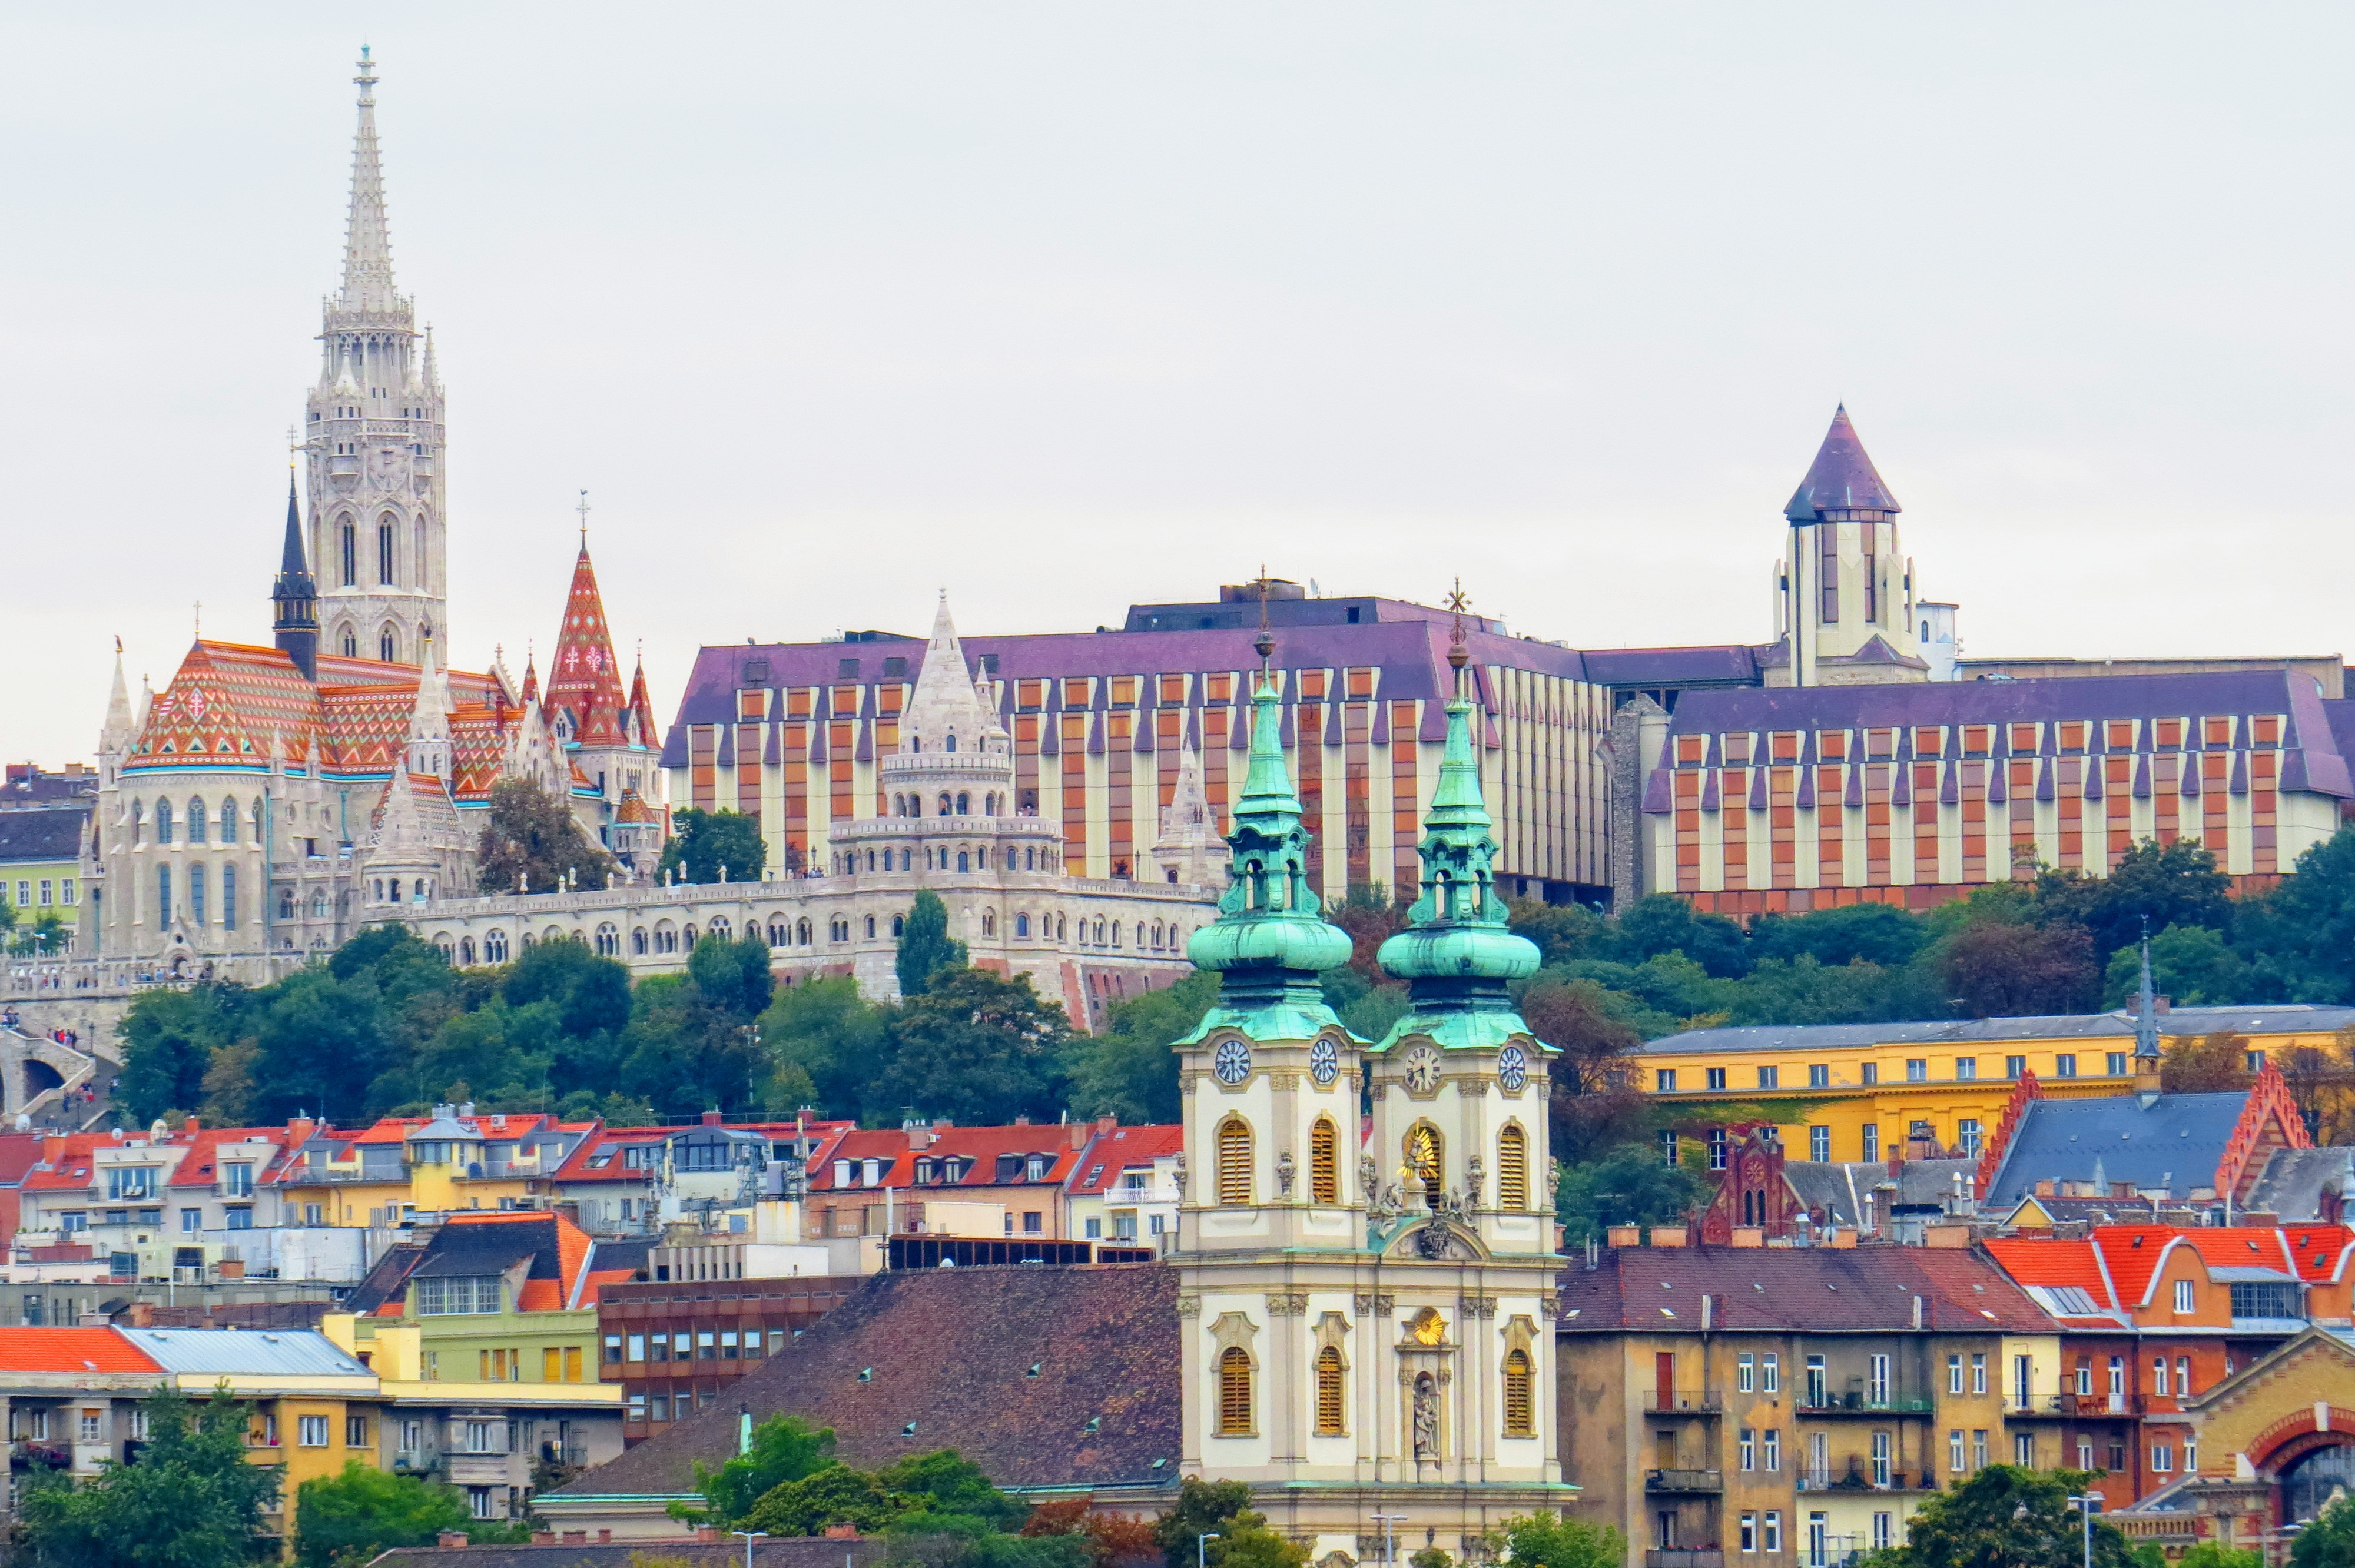 The Buda side of Budapest, Hungary. Backpacking Europe www.knowntoventure.com